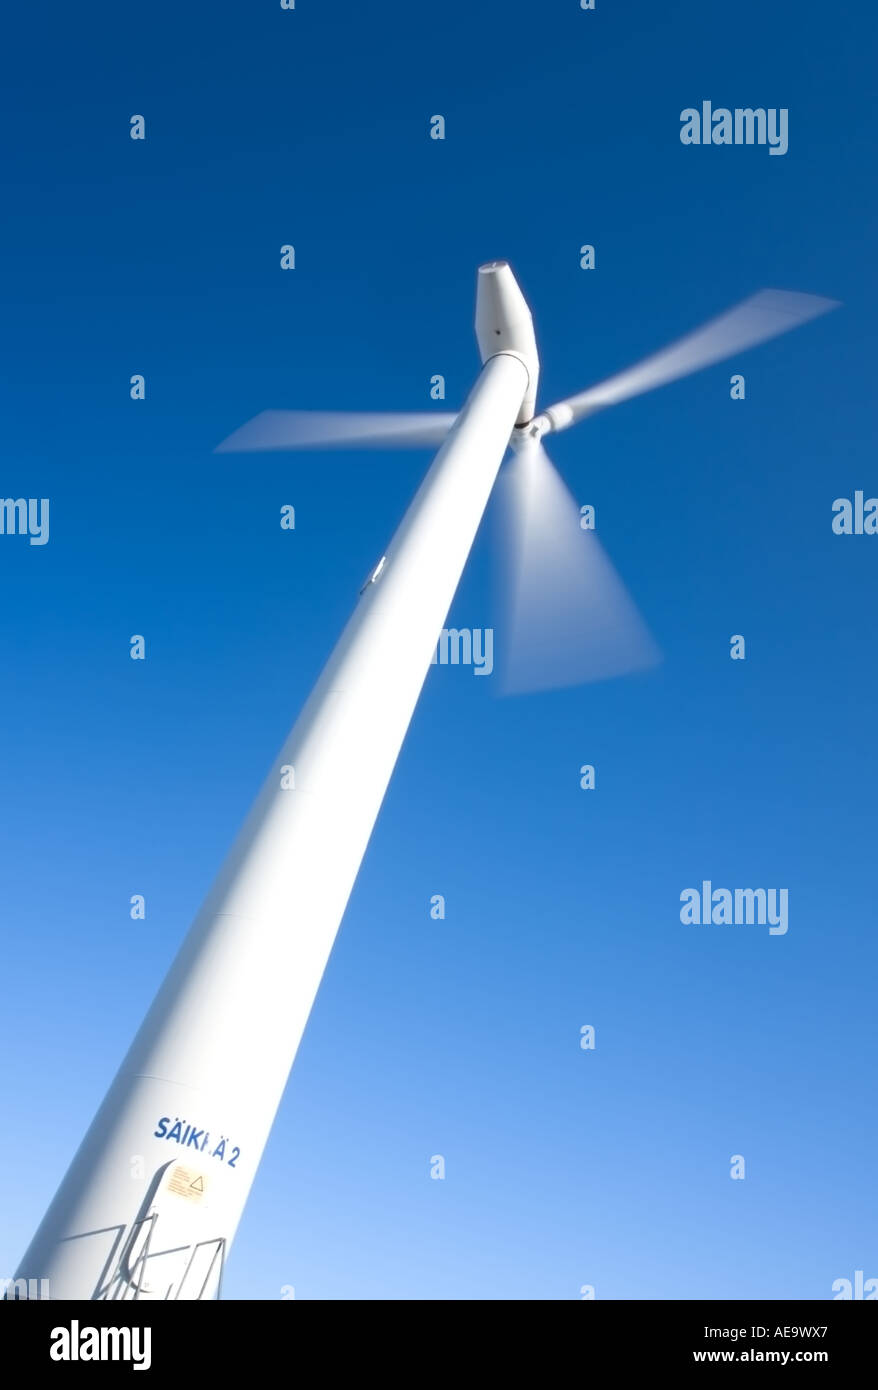 Spinning wind power plant rotor and pylon against clear blue sky - Stock Image